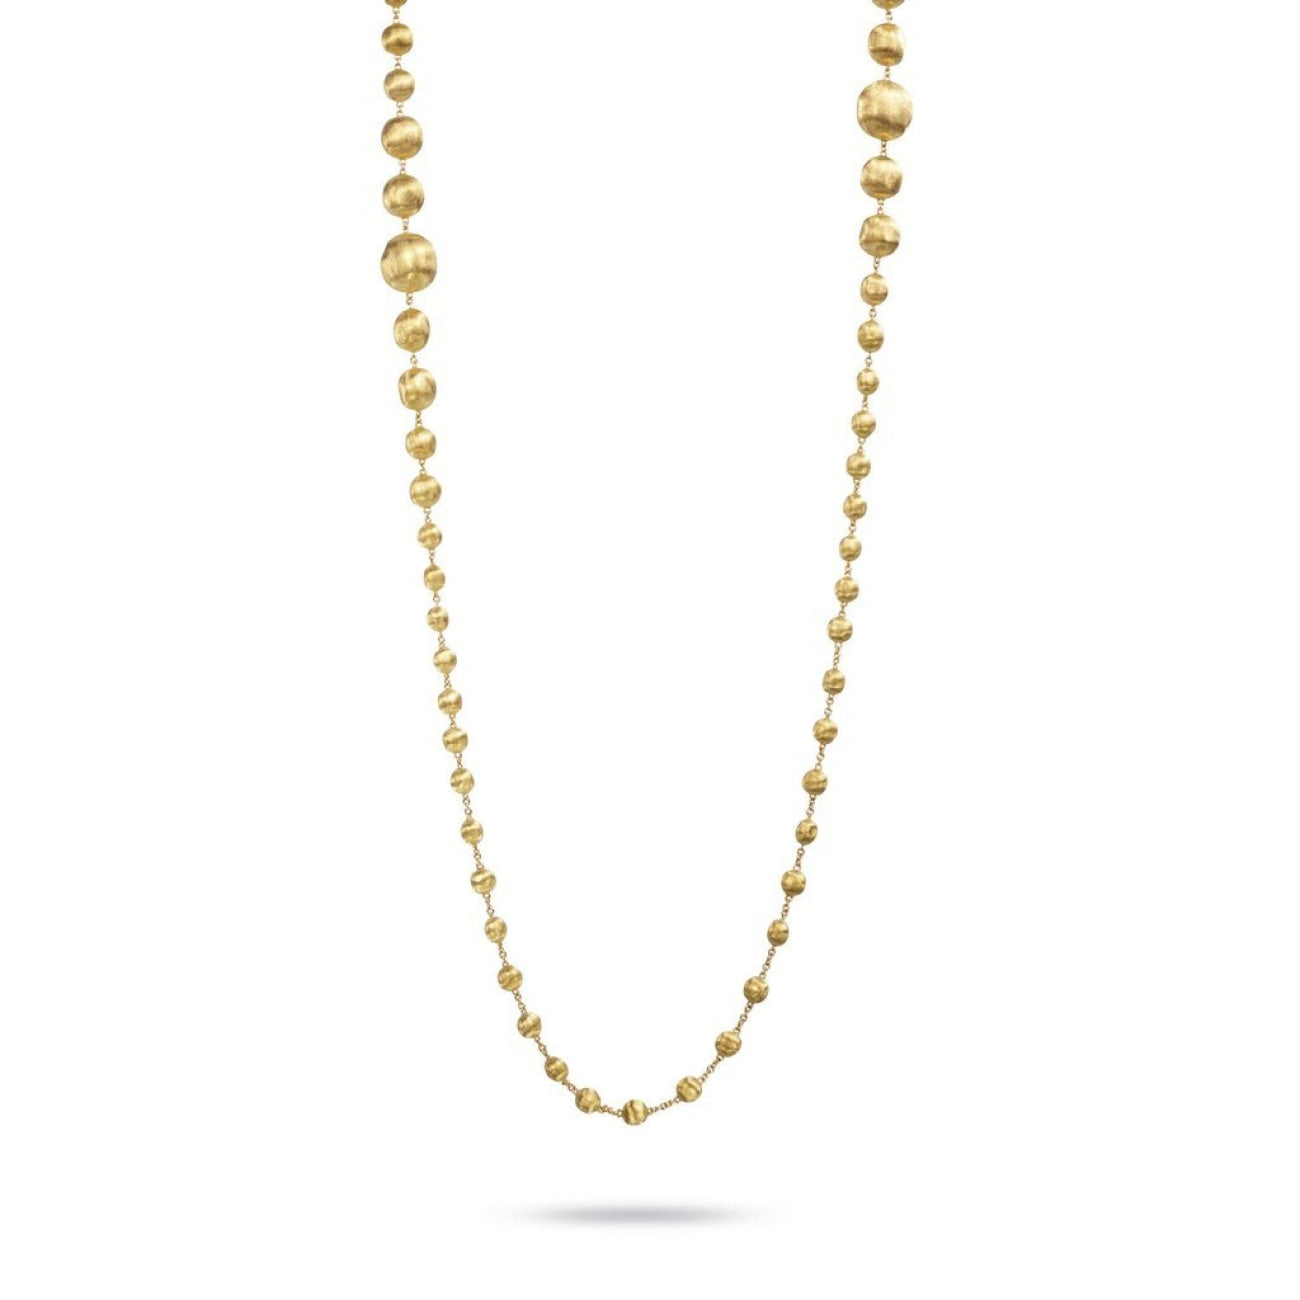 Marco Bicego Jewelry - 18K Yellow Gold Graduated Double Wave Necklace | Manfredi Jewels